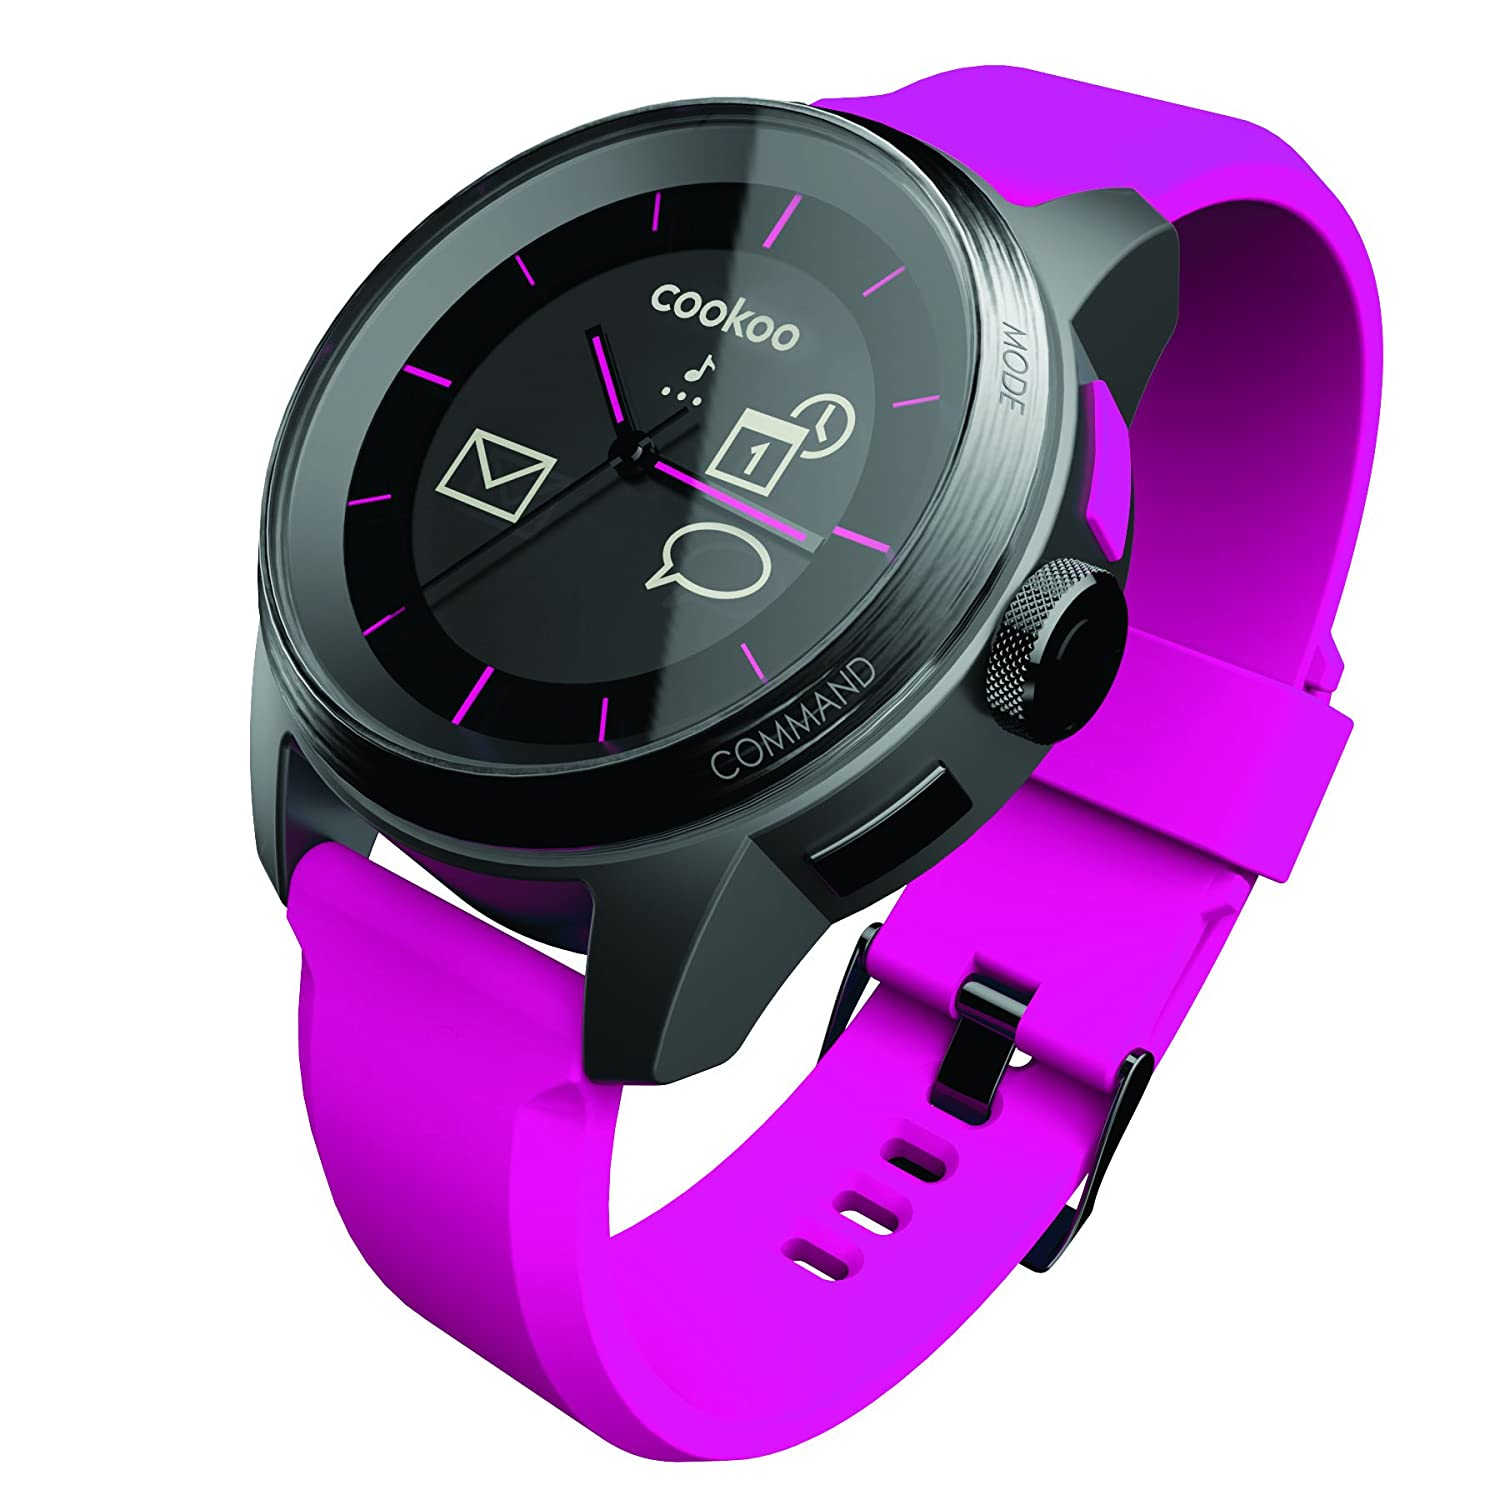 Cookoo CK-48-003 Connected Smart Uhr schwarz-rosa